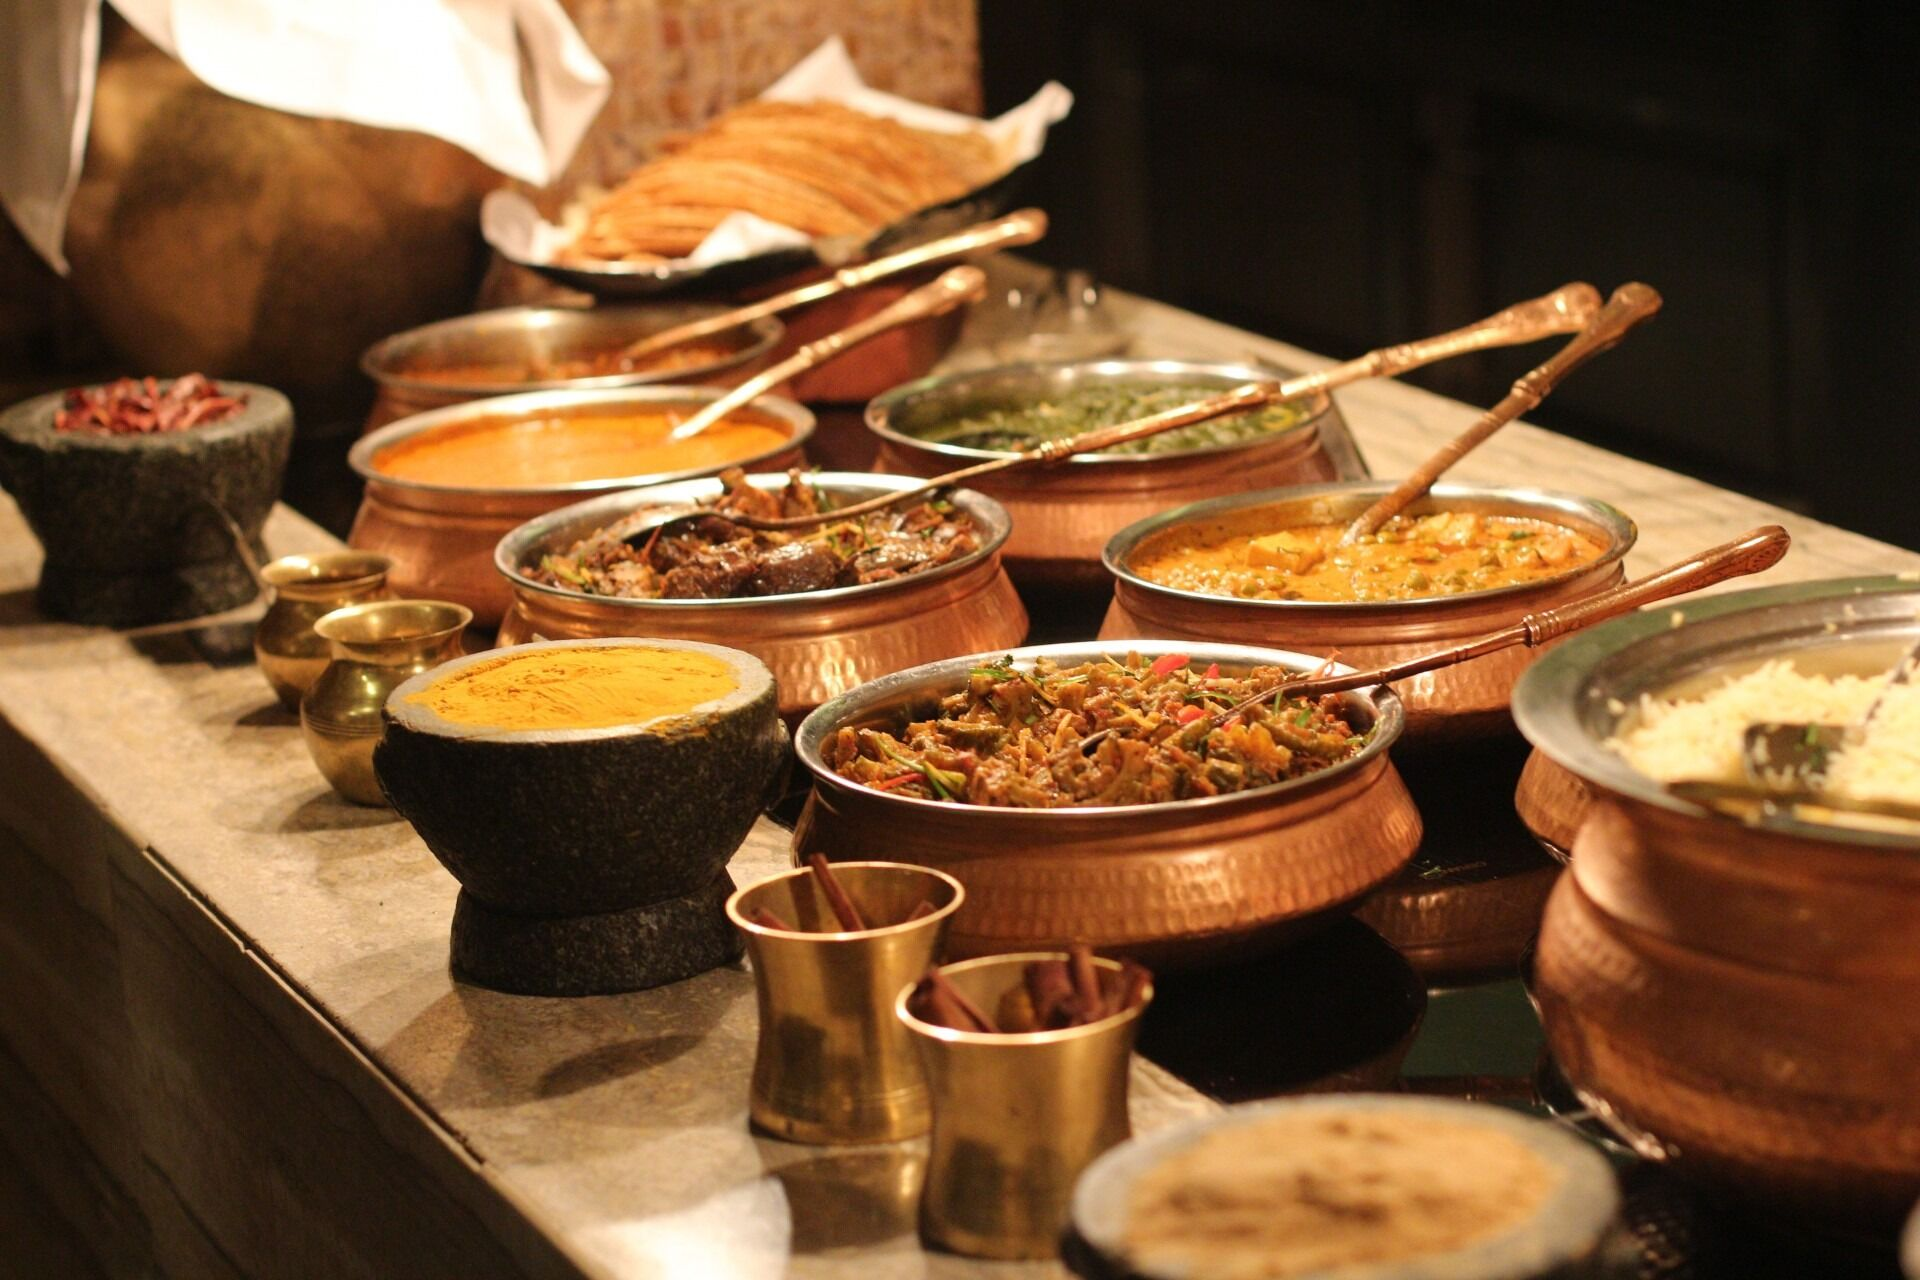 Special Father's Day Buffet at Saffron Valley on June 16